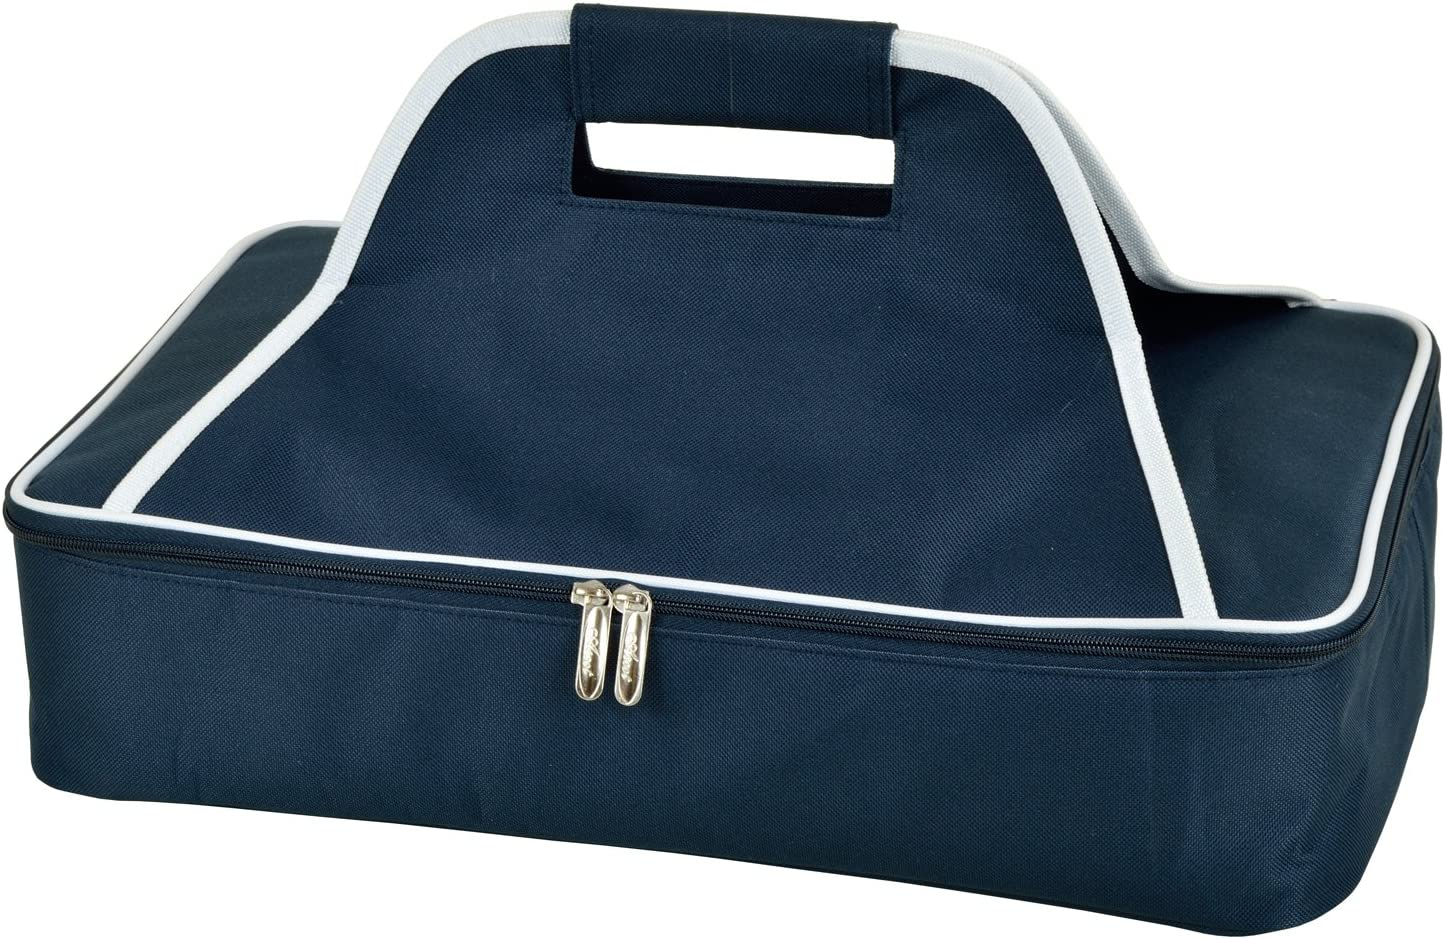 Picnic at Ascot Original Insulated Thermal Food & Casserole Carrier- keeps Food Hot or Cold- Fits 15